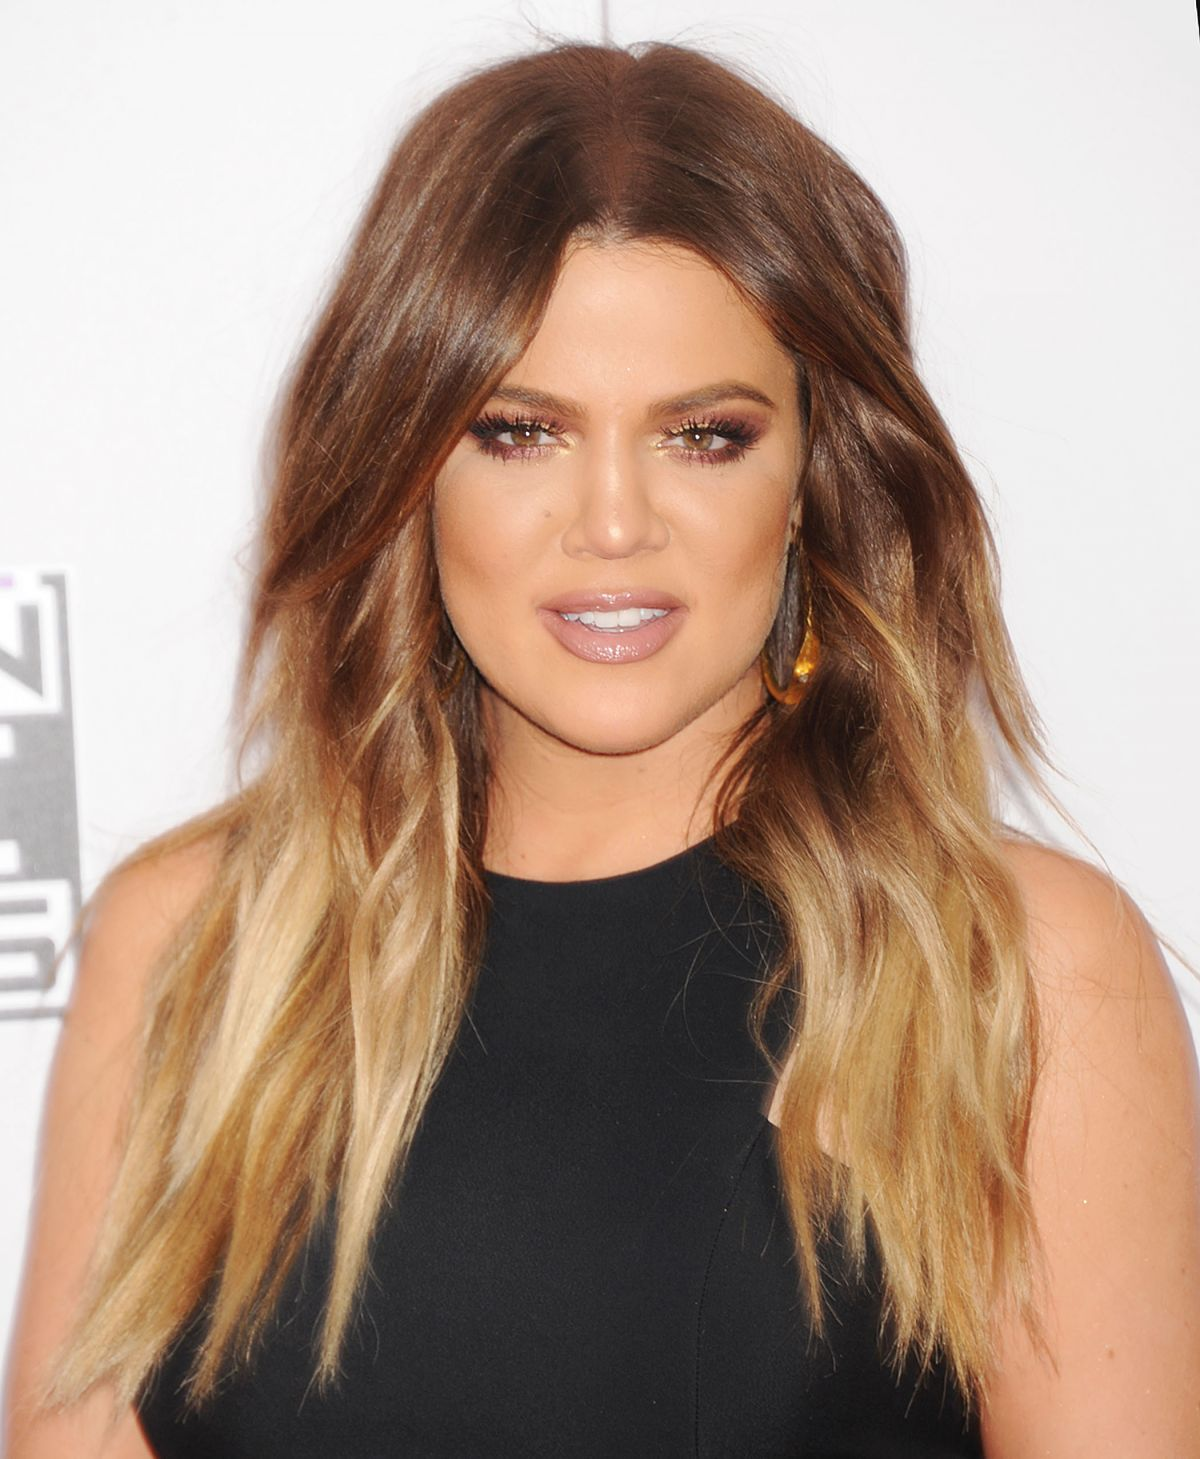 khloe kardashian - photo #40